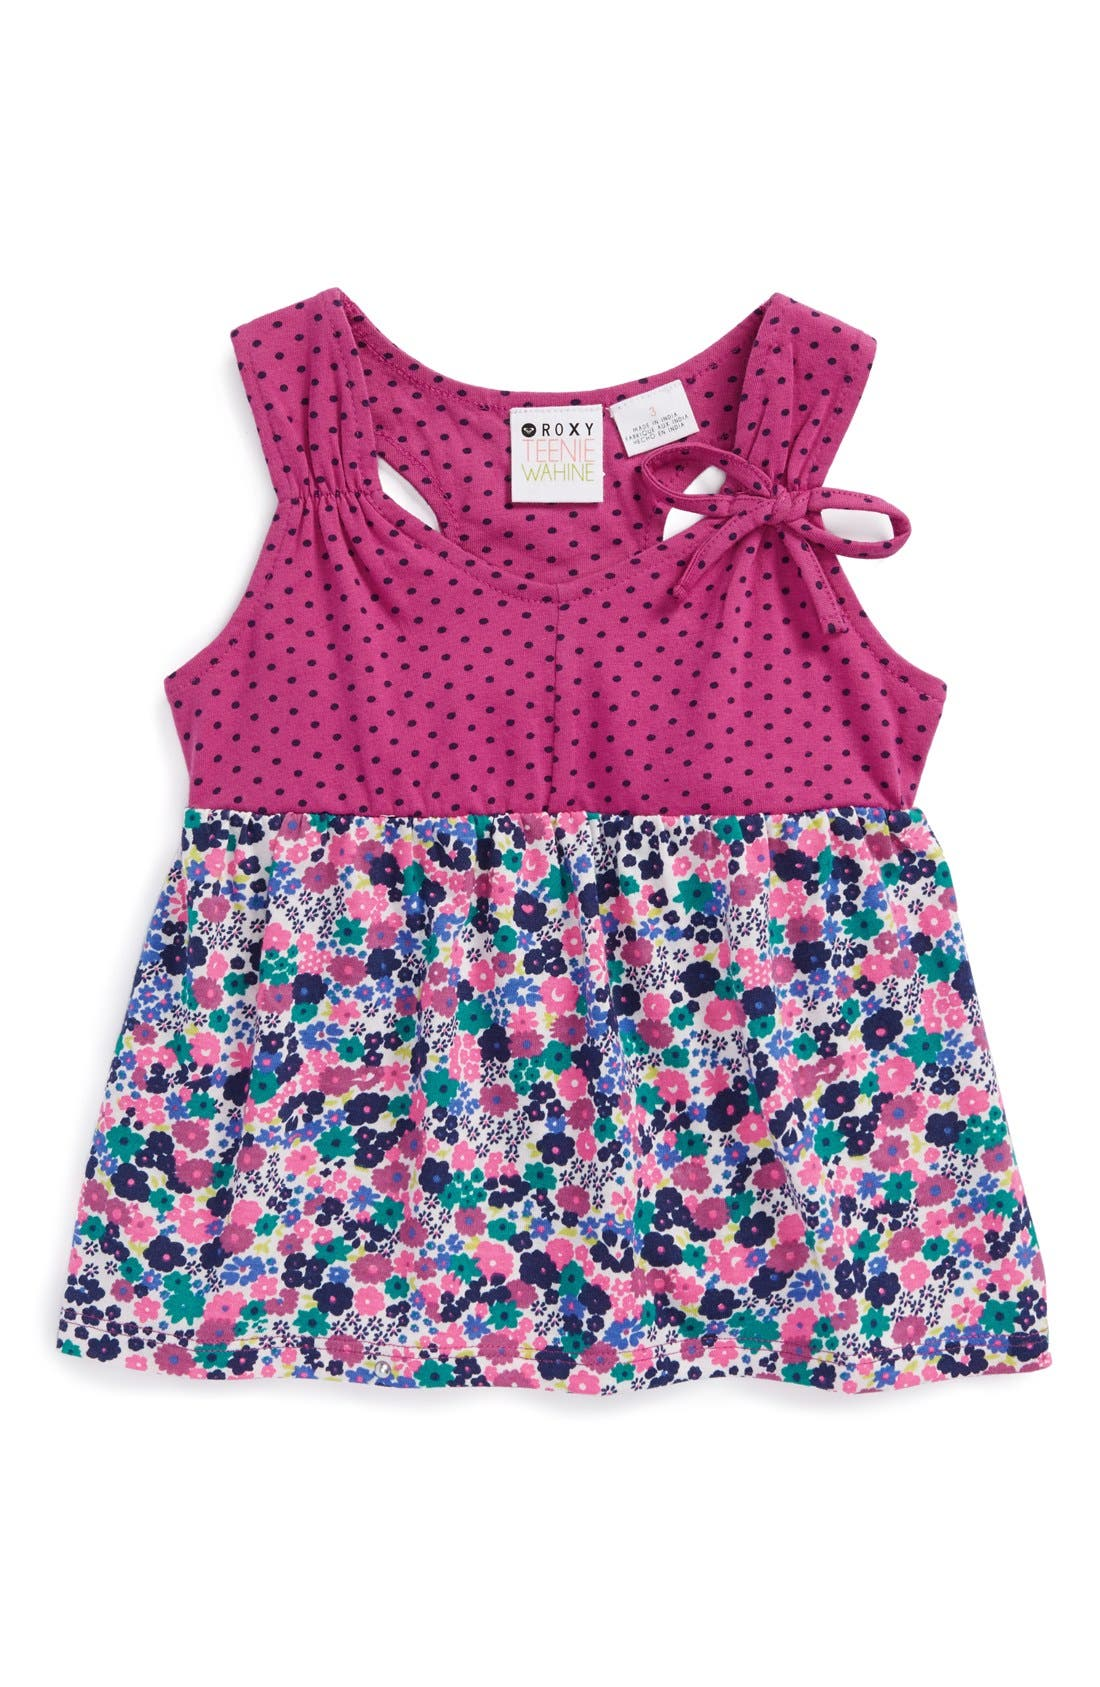 Alternate Image 1 Selected - Roxy 'Turn Around' Sleeveless Top (Toddler Girls)